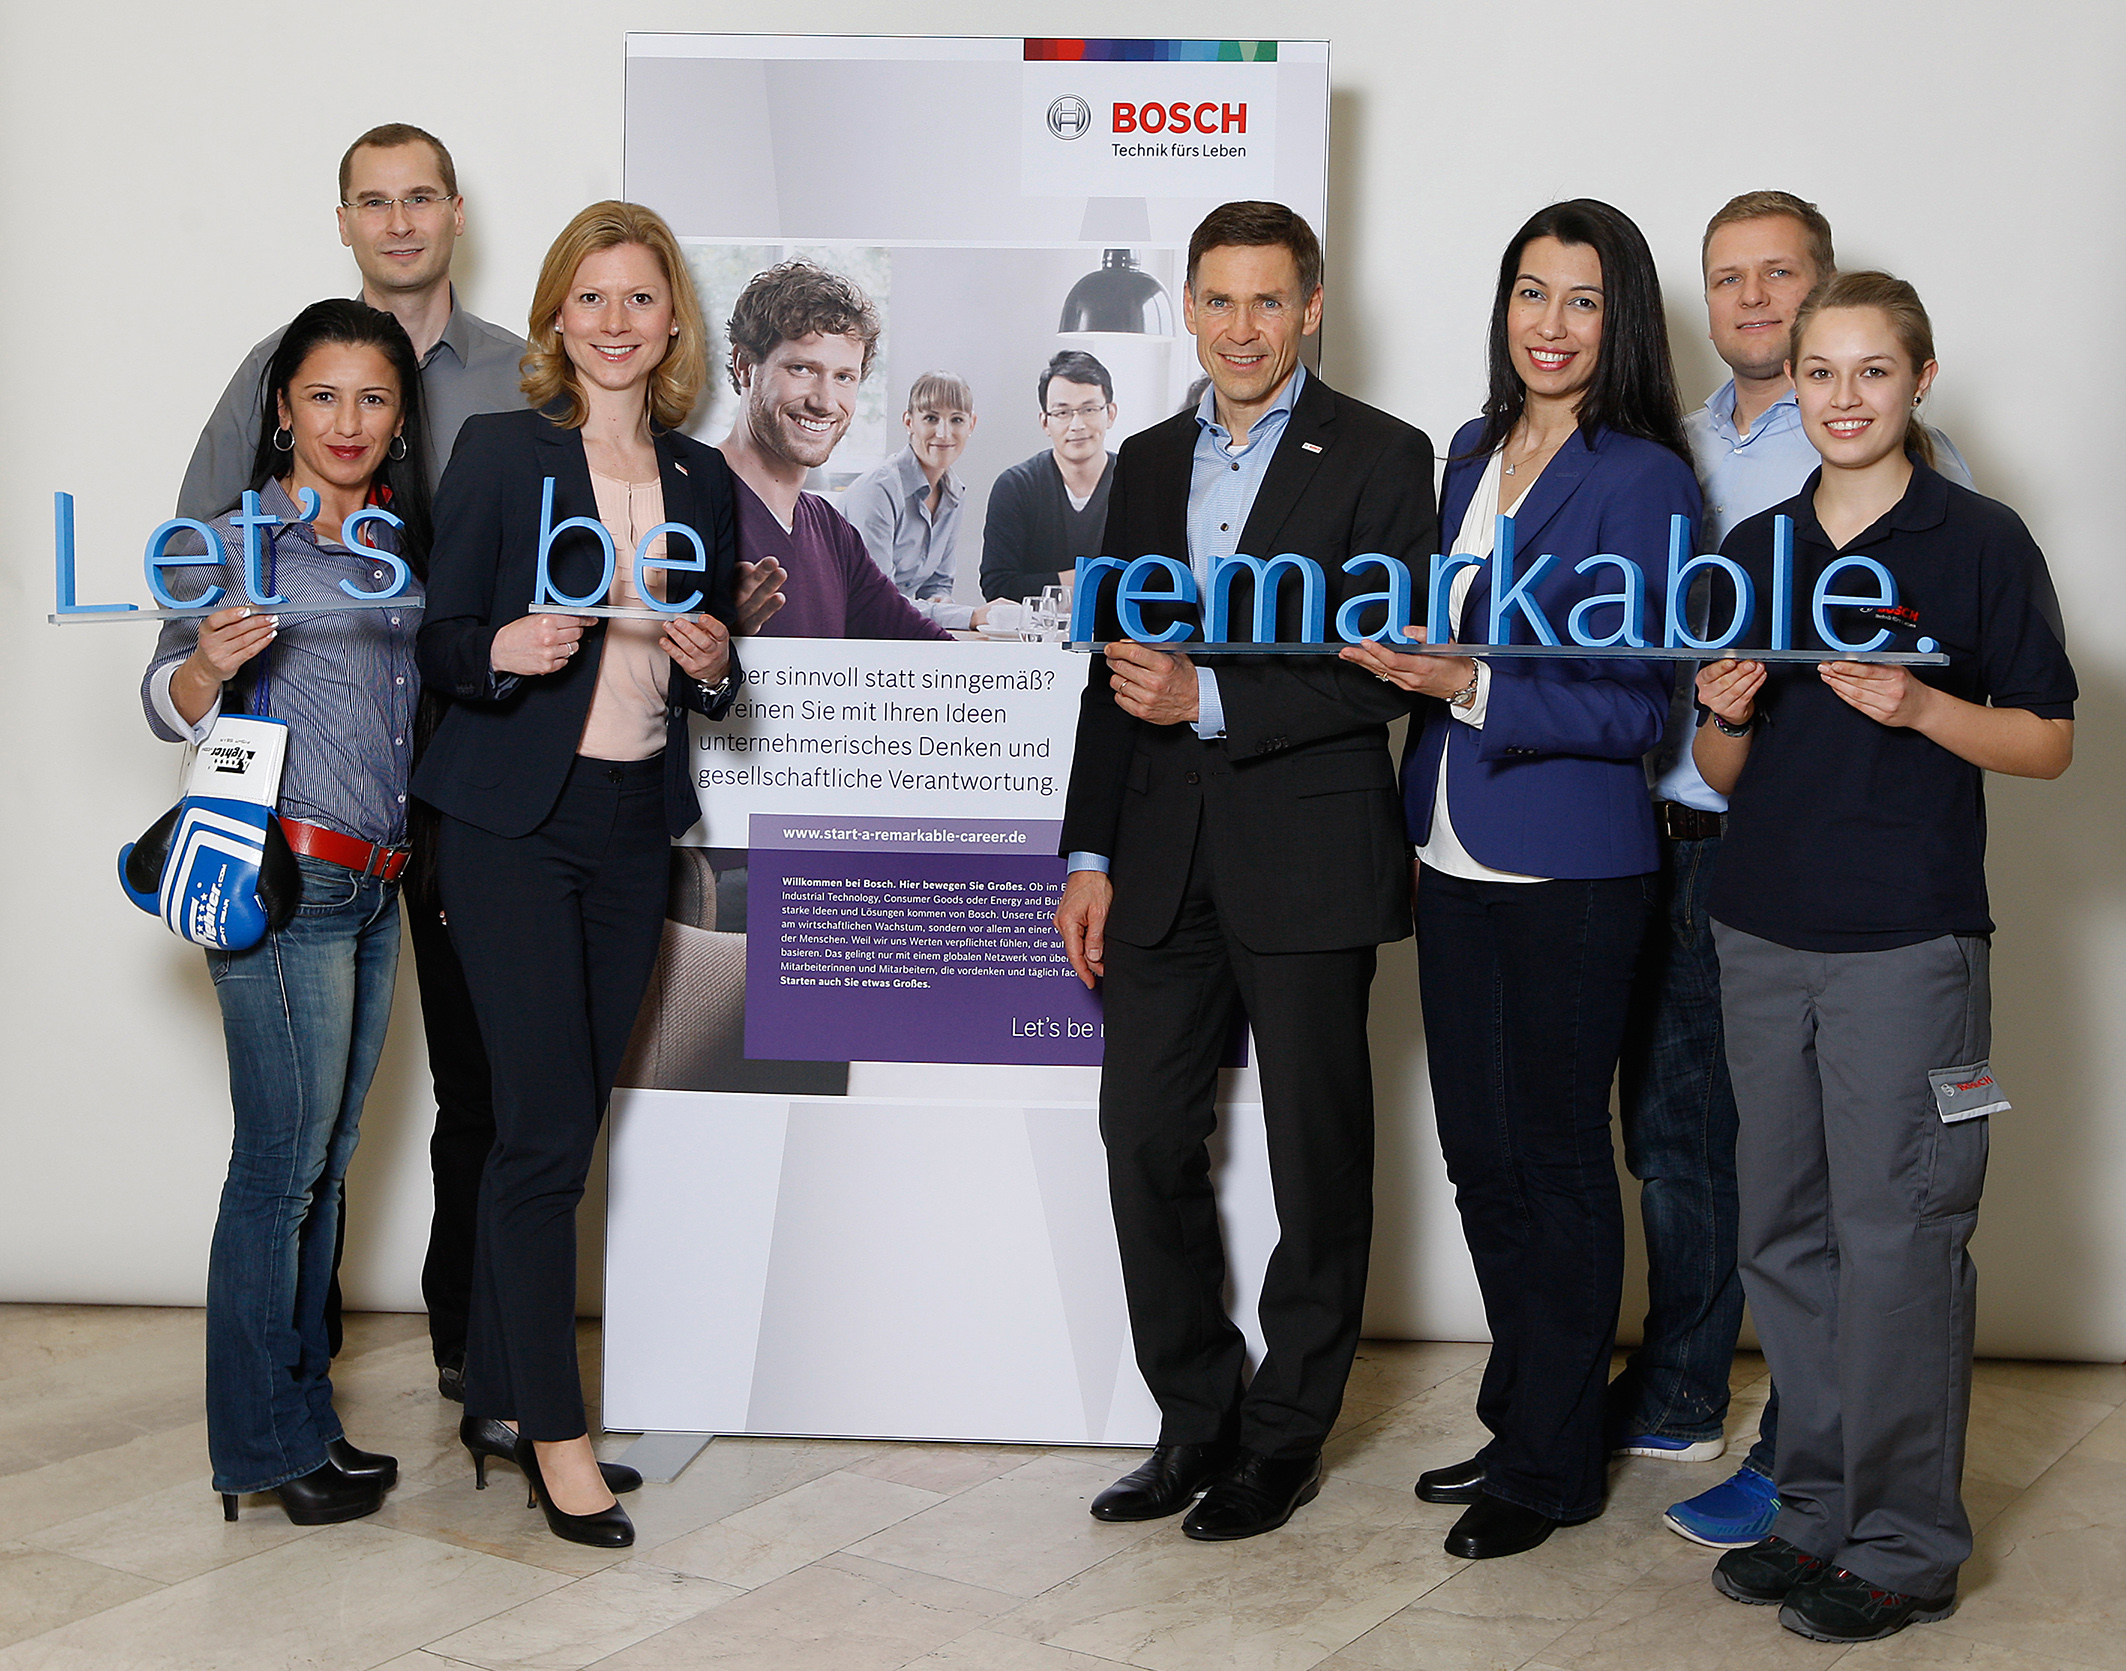 """Let's be remarkable"": a new look for Bosch as an employer"